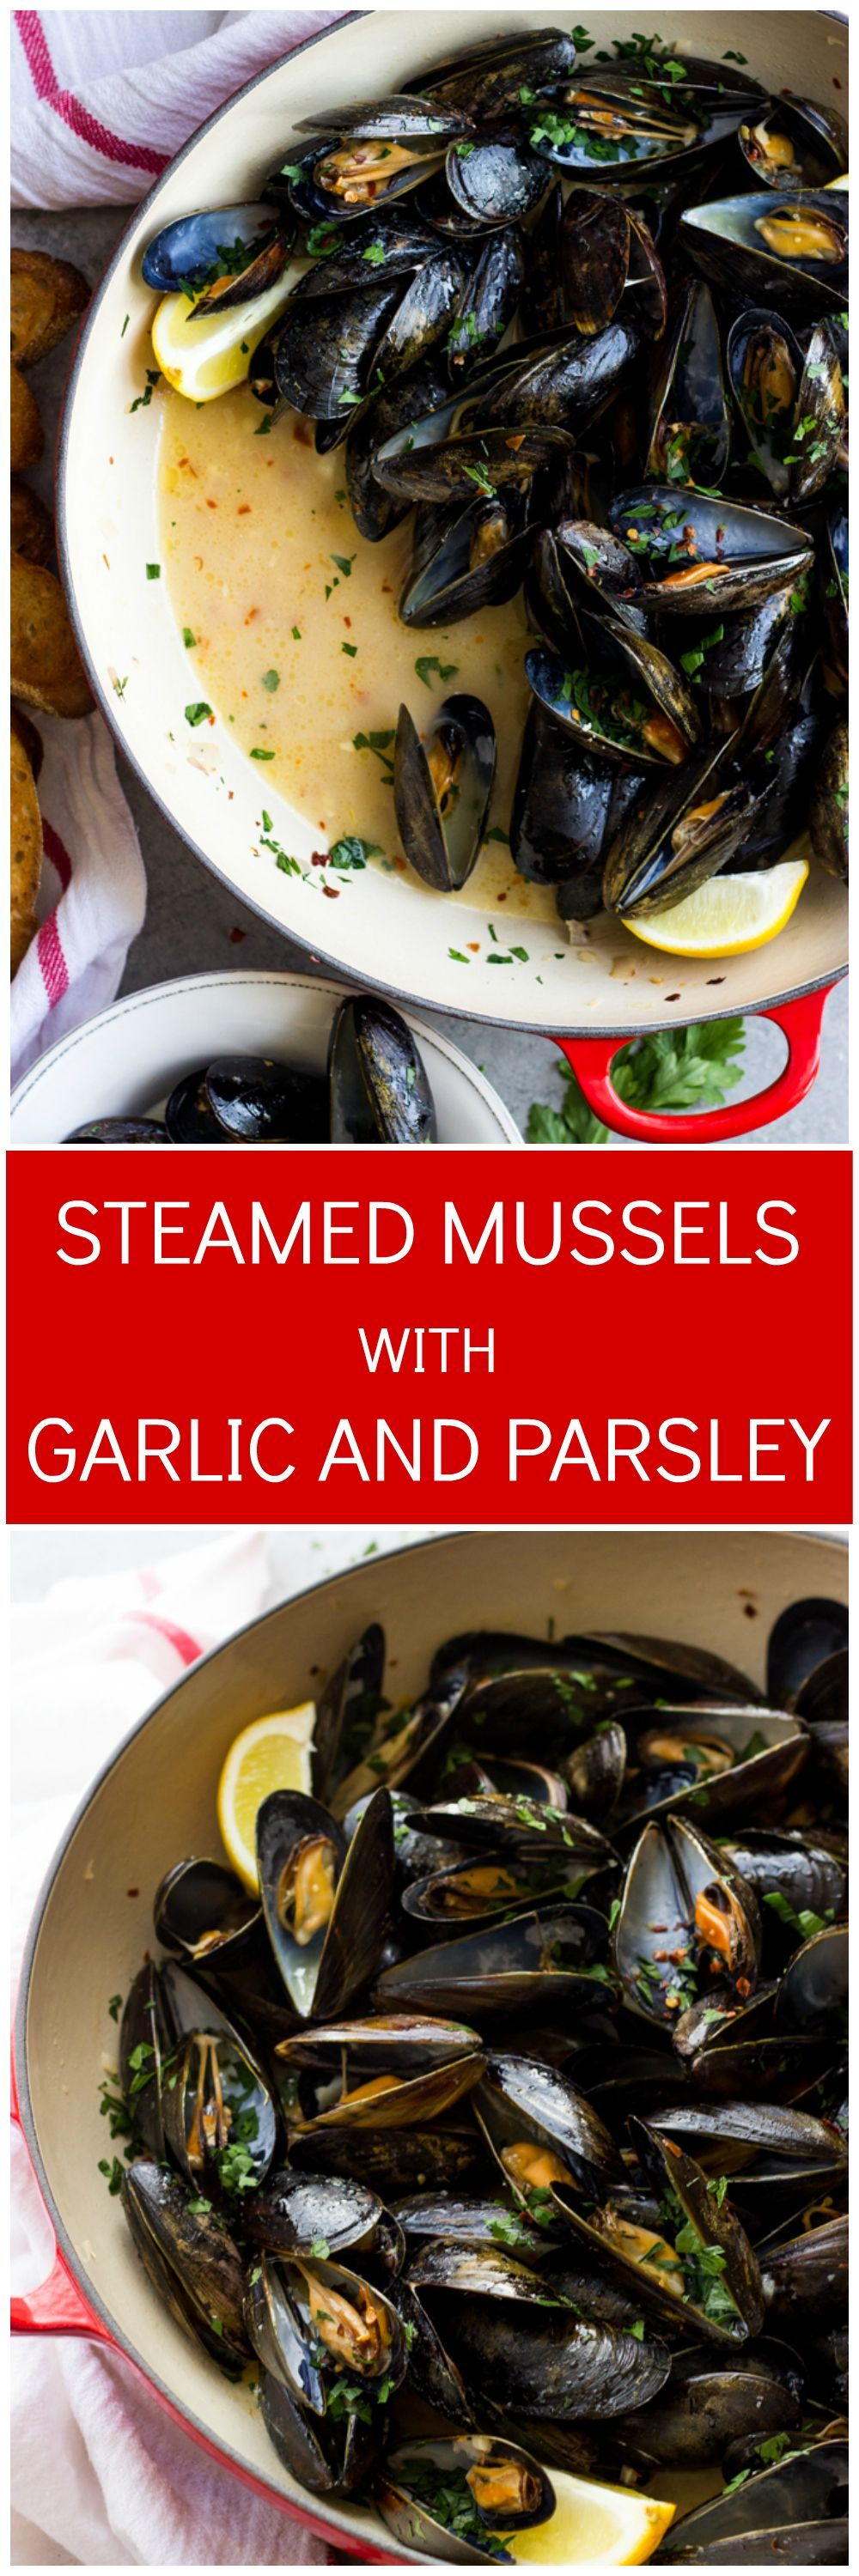 Steamed Mussels With Garlic And Parsley Recipe With Images Seafood Recipes Mussels Recipe Appetizer Recipes